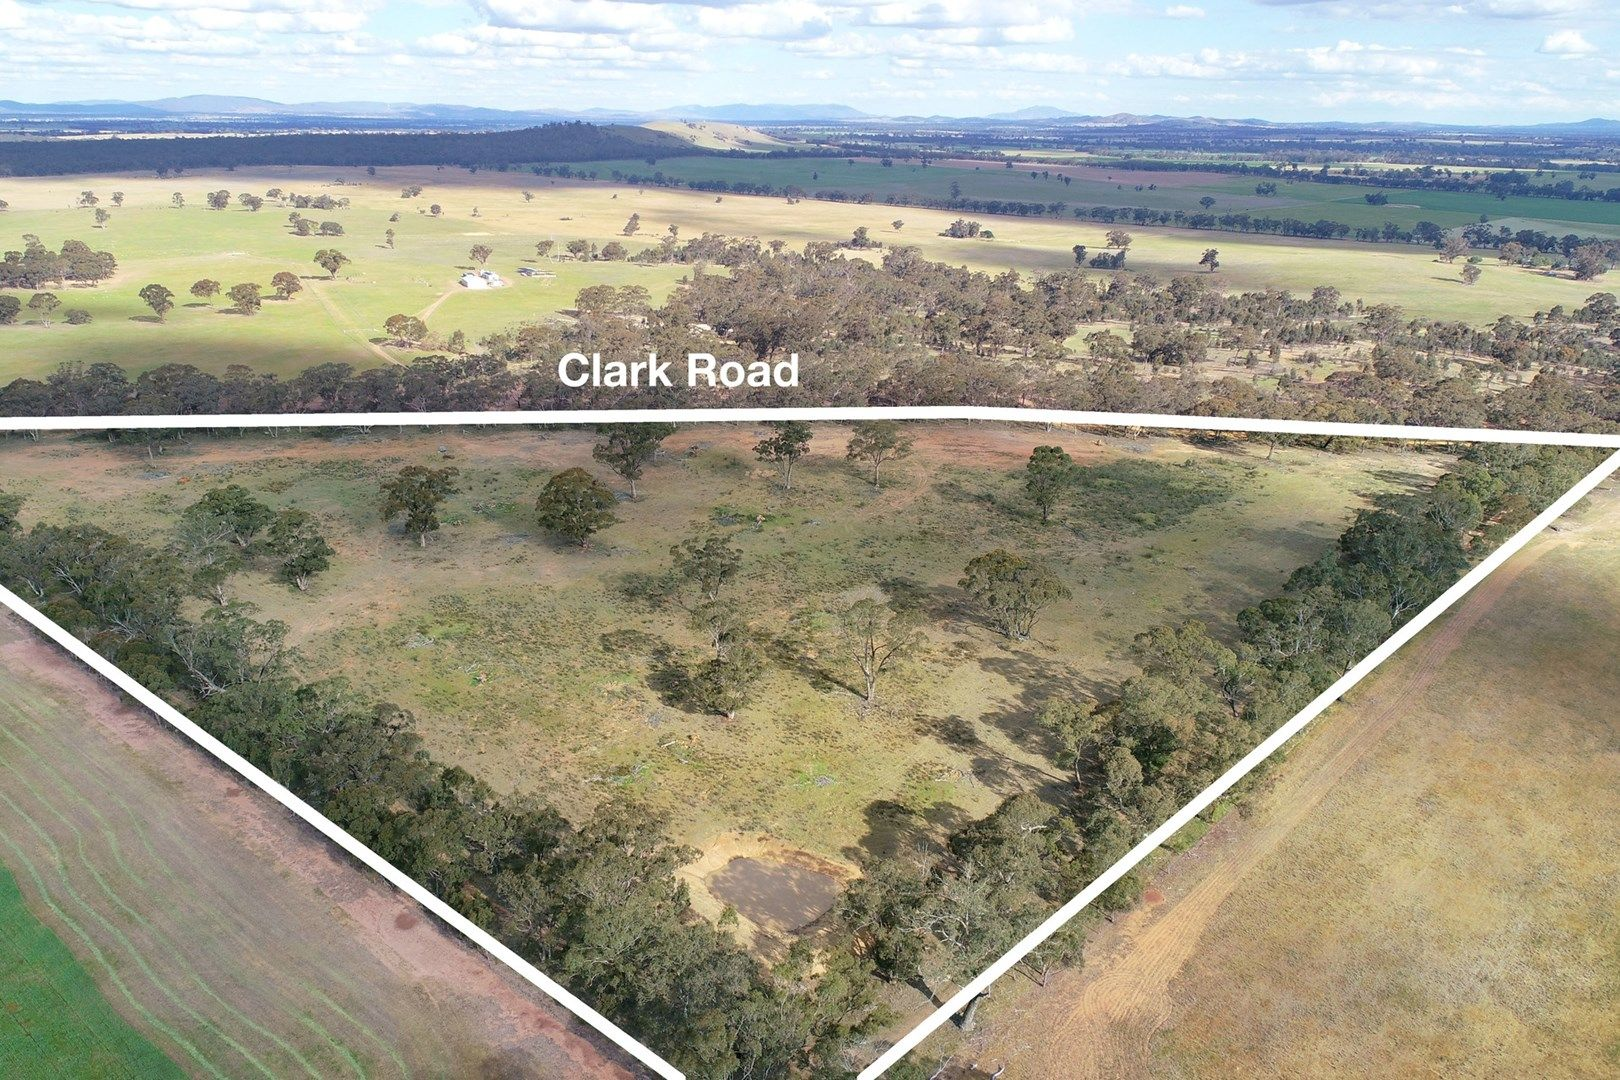 C/A 9 Clark Road, Stawell VIC 3380, Image 0